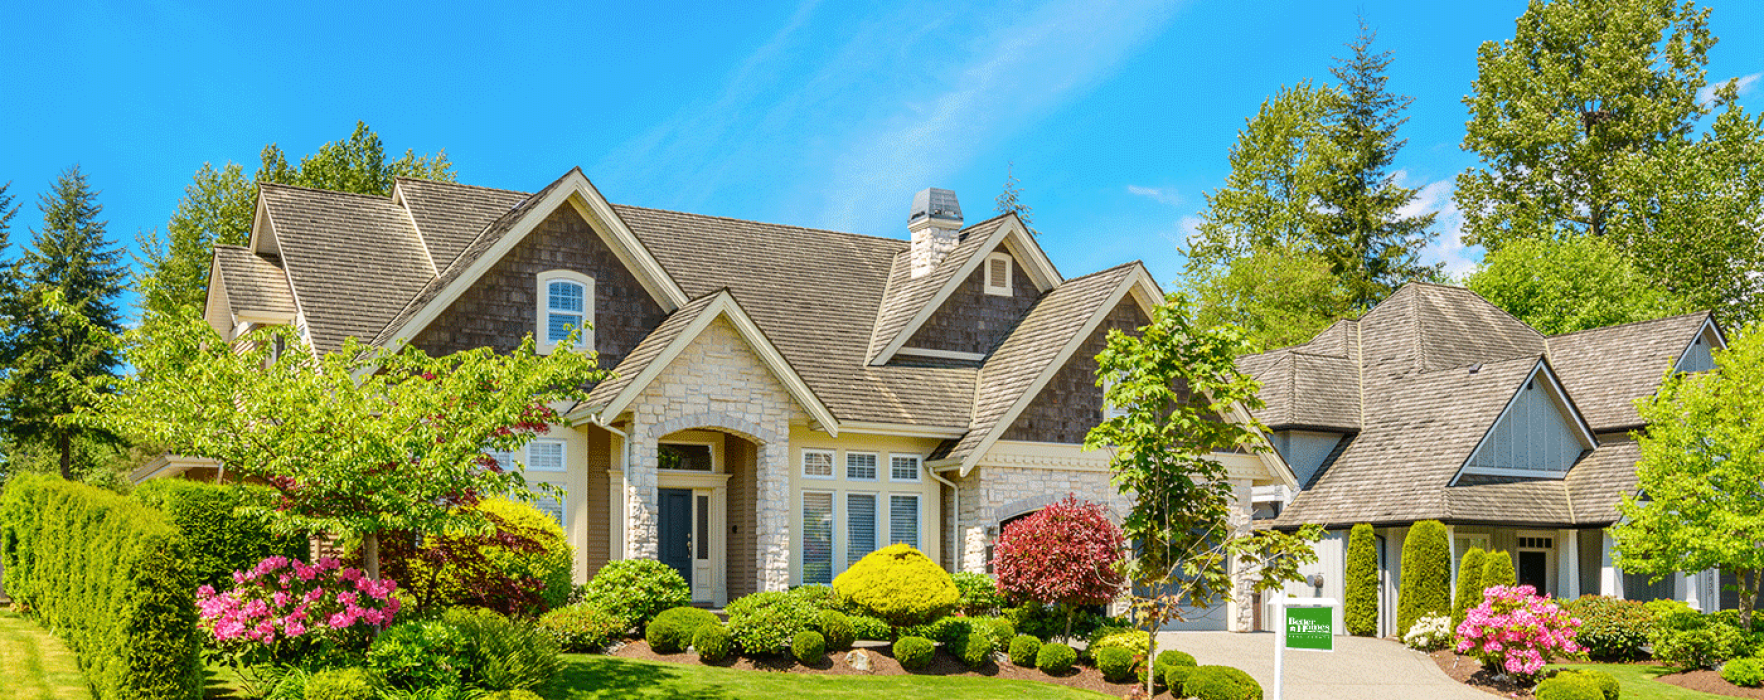 Top 5 Fixes To Sell Your Home Better Homes And Gardens Real Estate Life